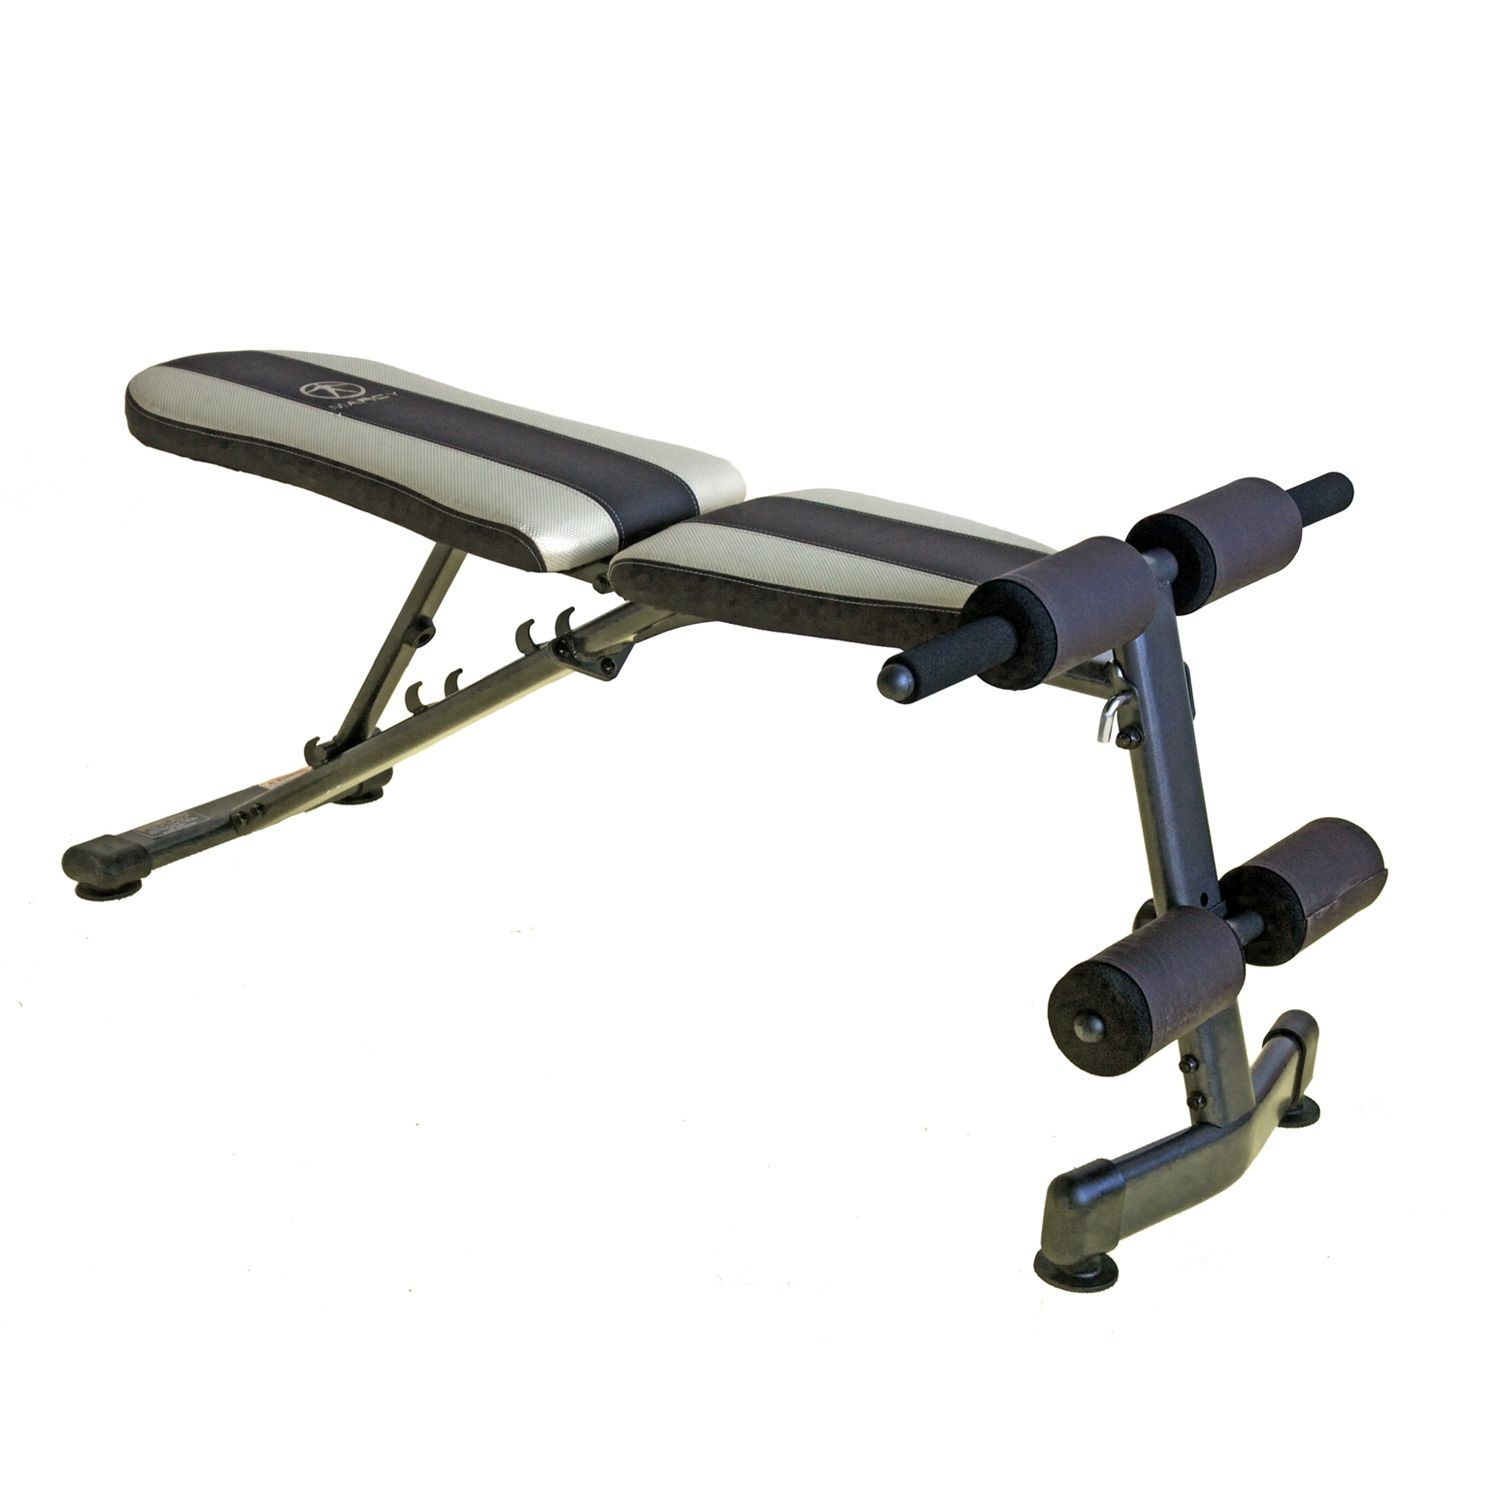 Marcy-SB222-Multi-Purpose-Utility-Bench